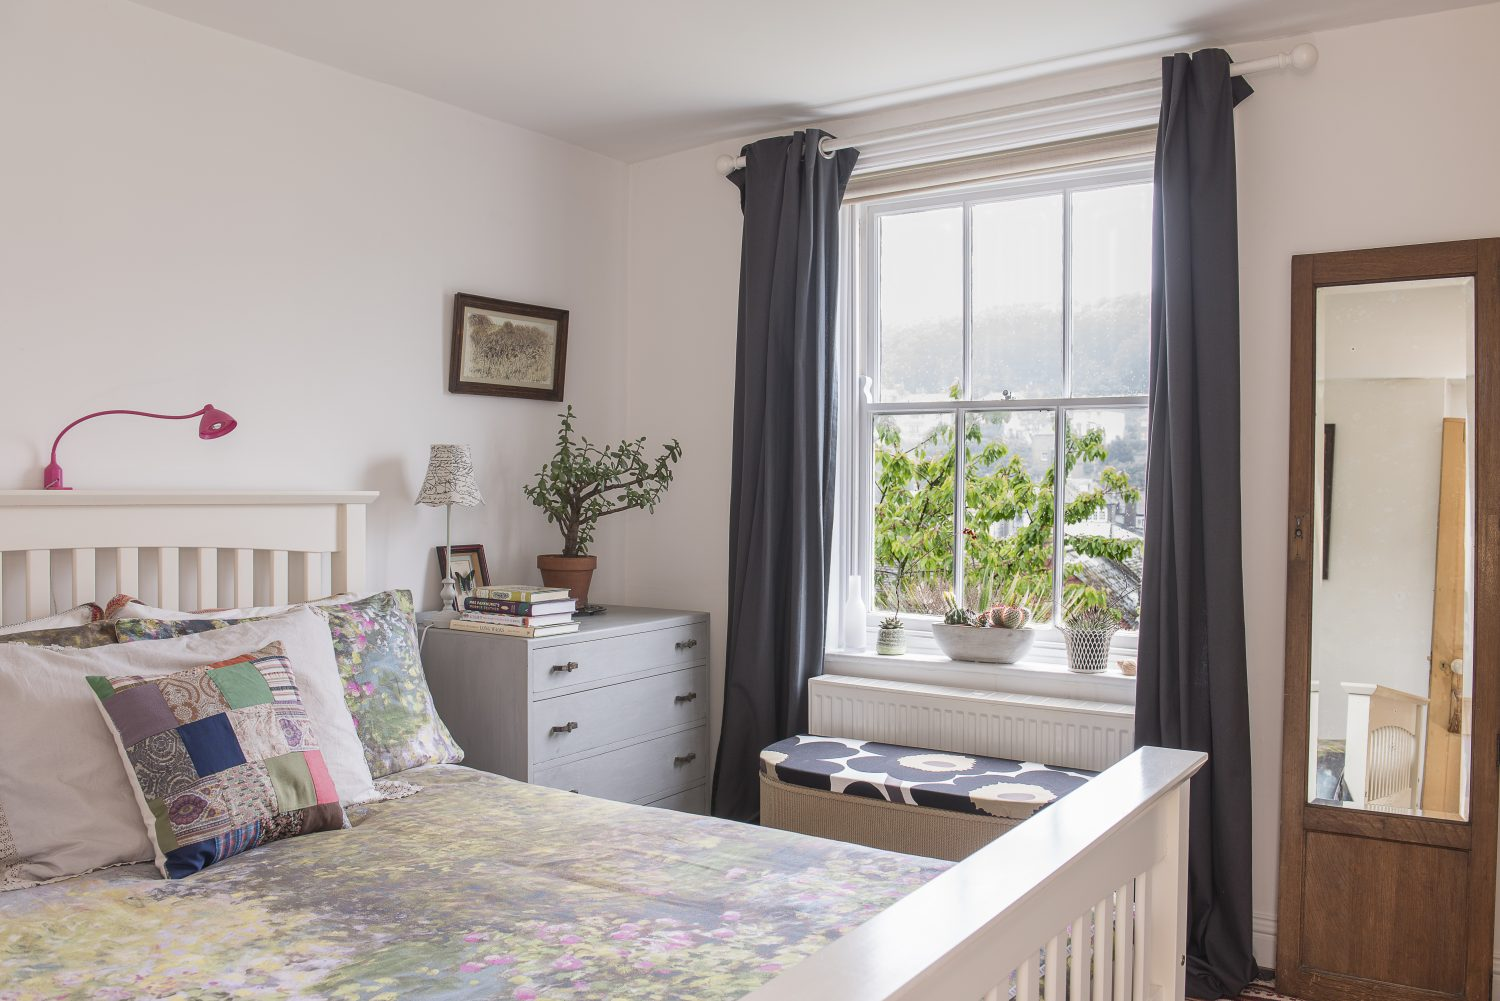 The spare bedroom has views over the Old Town. The grey curtains are from Marks & Spencer